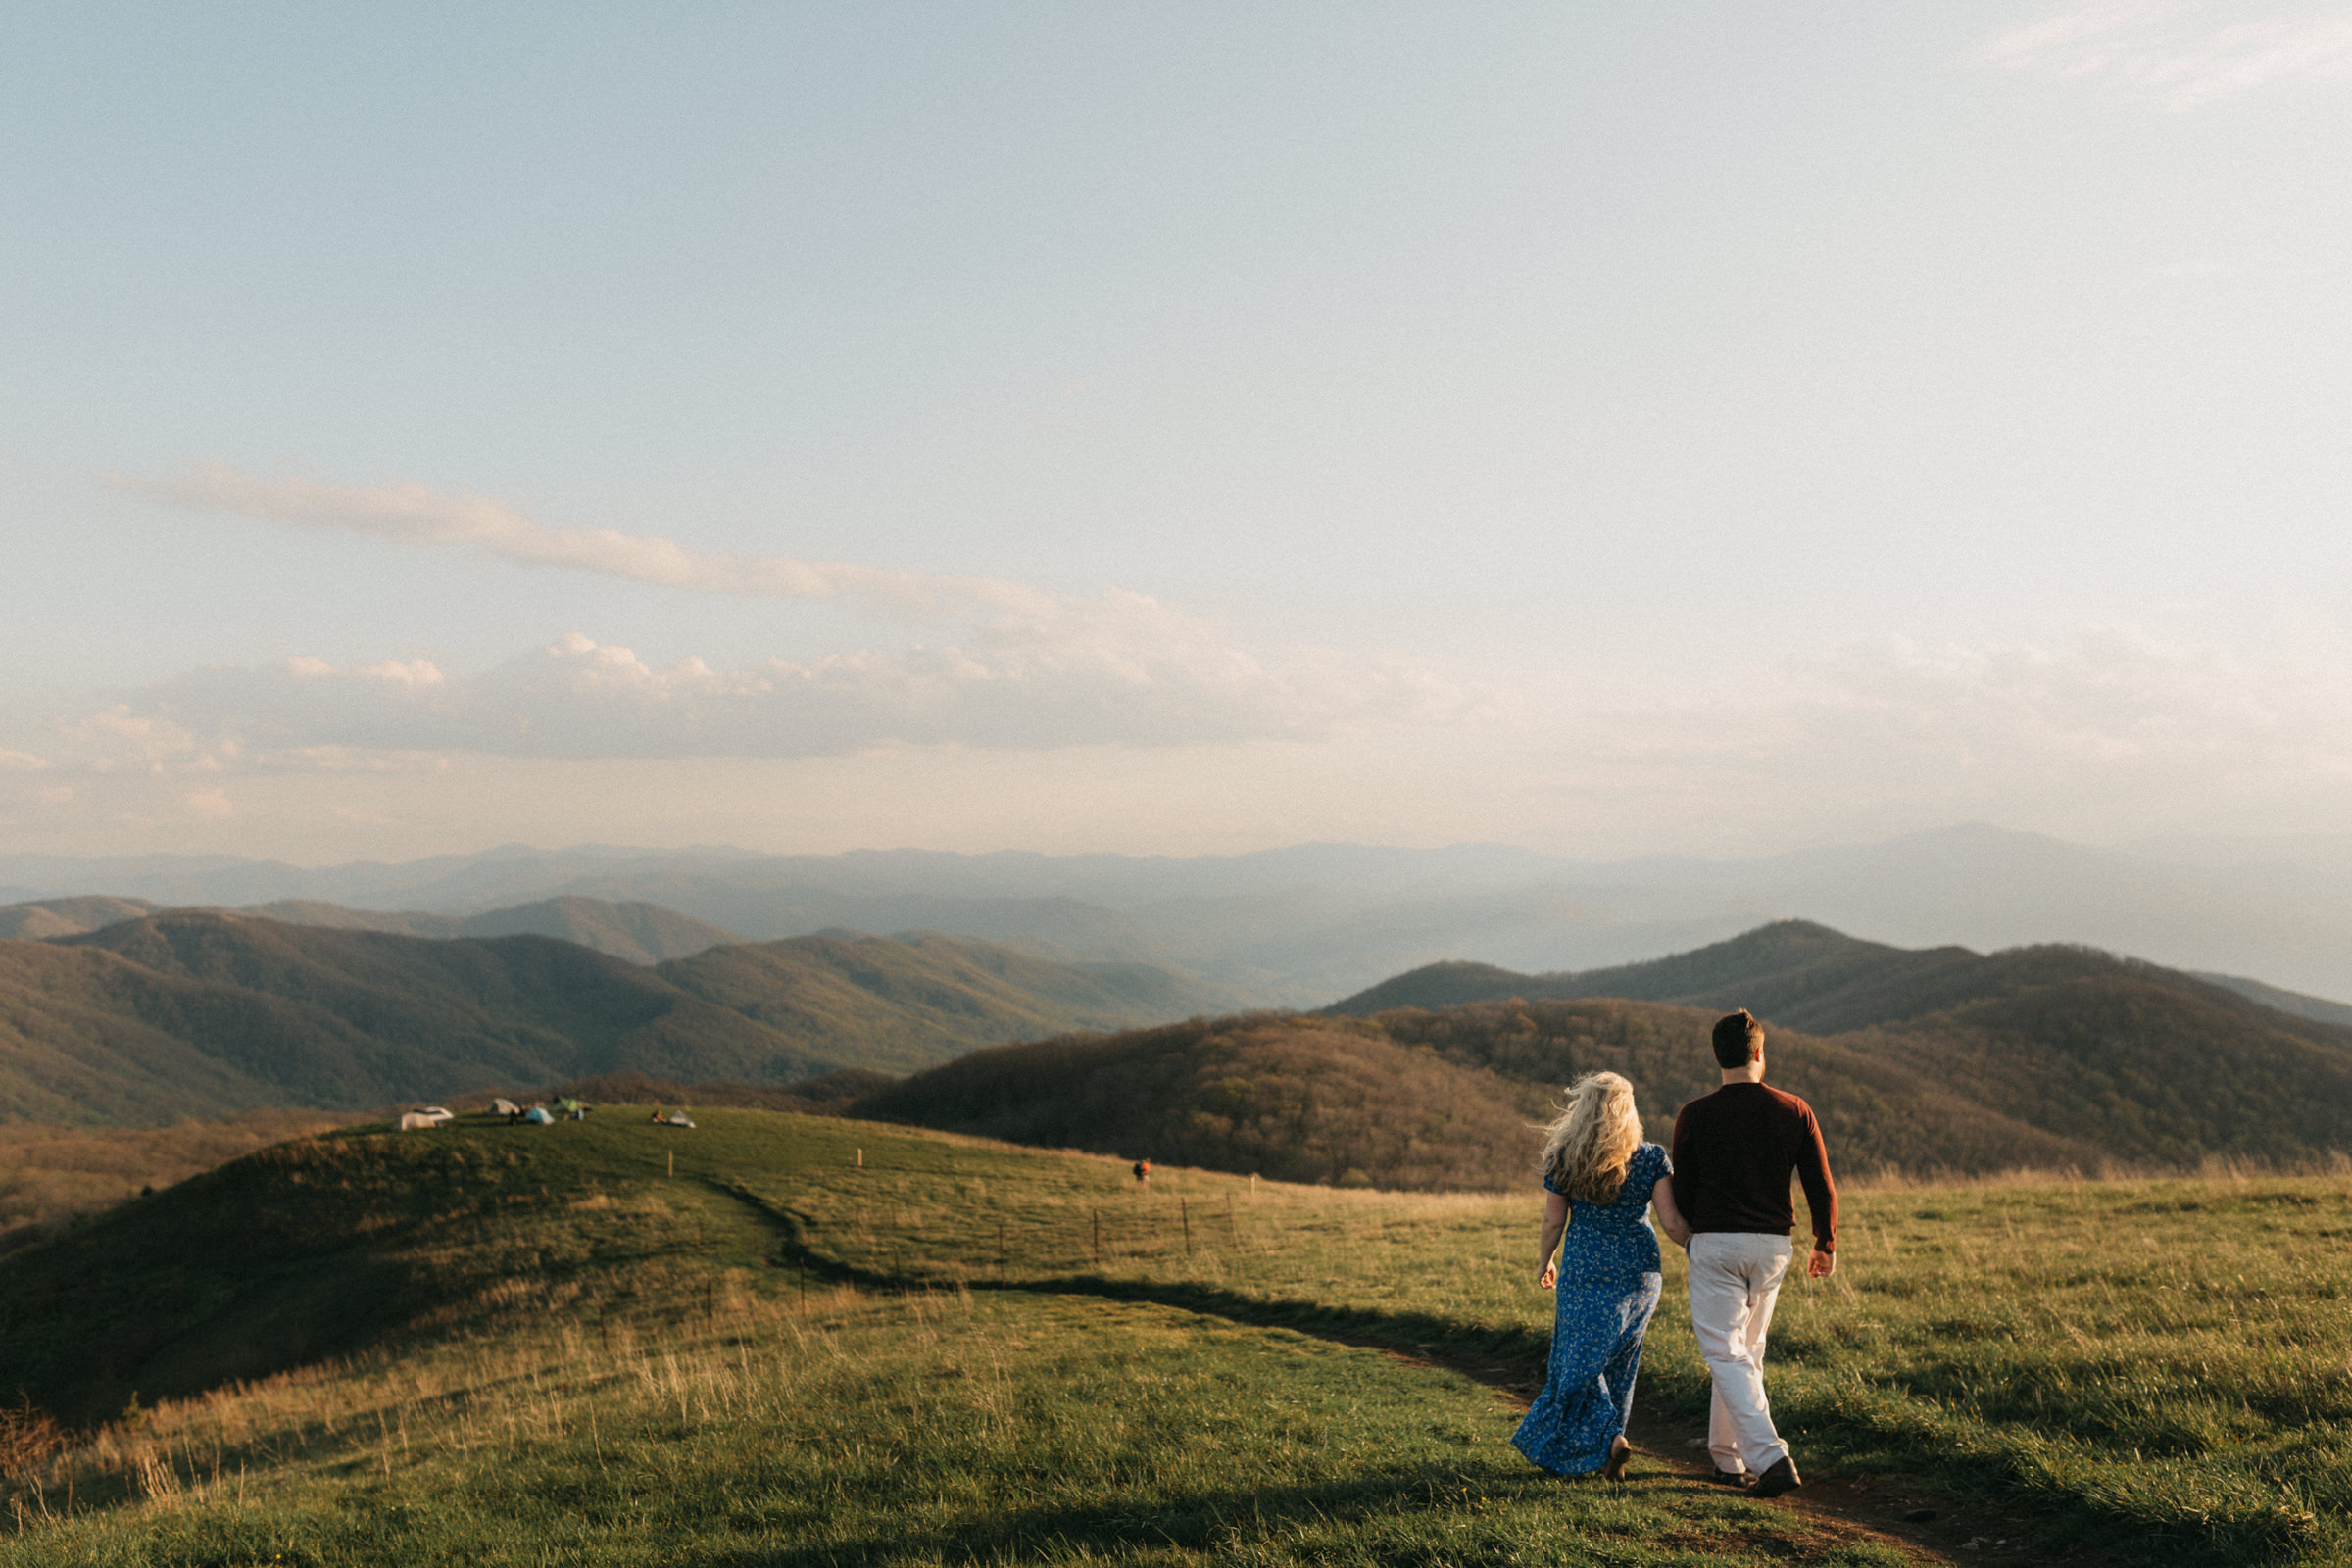 Couple walking along the Appalachian trail at sunset on Max Patch Mountain.